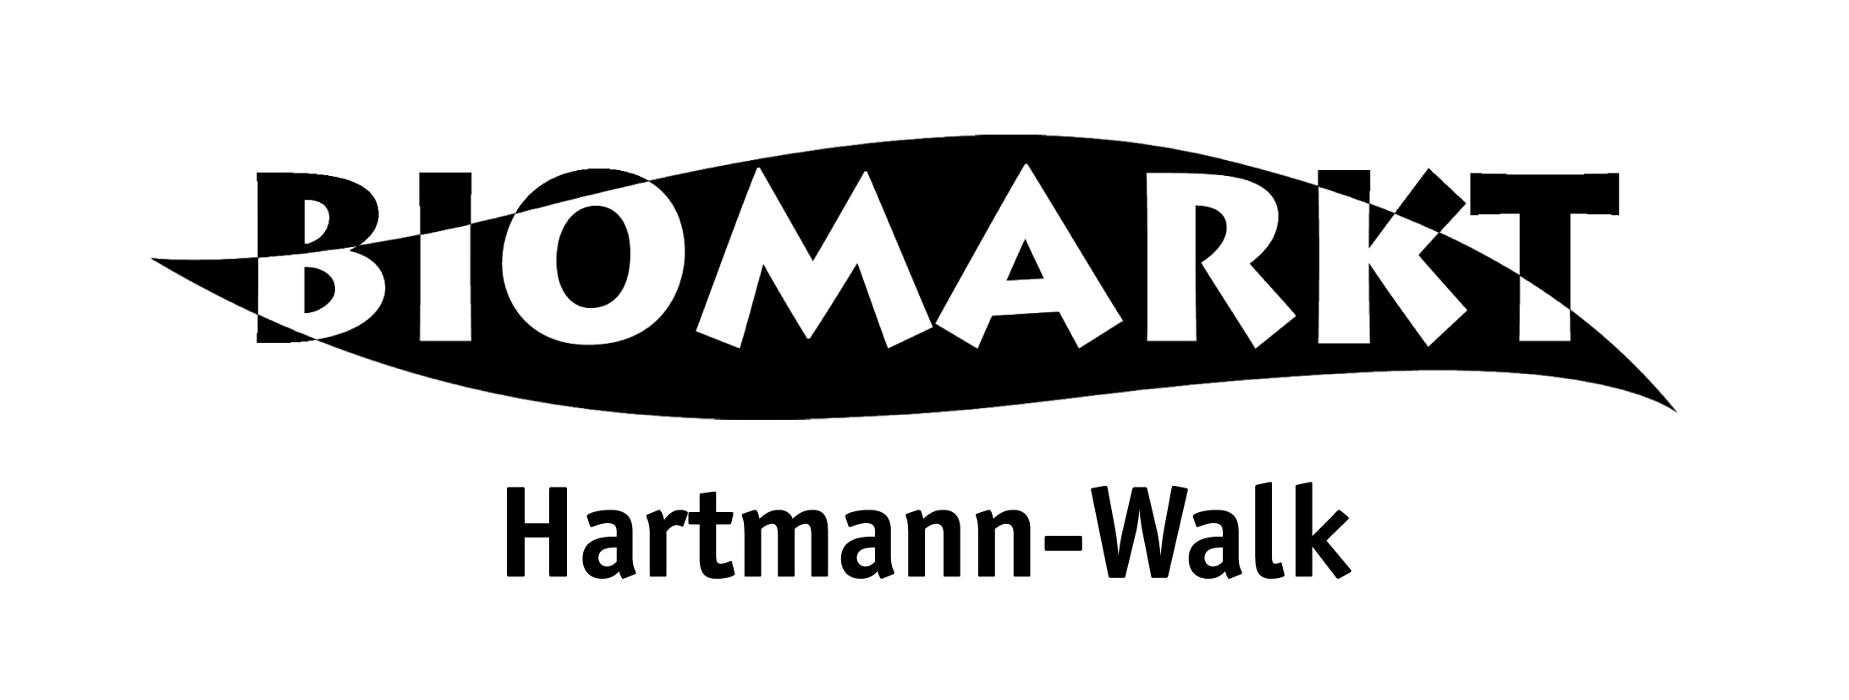 Bild zu Biomarkt Hartmann-Walk in Warendorf